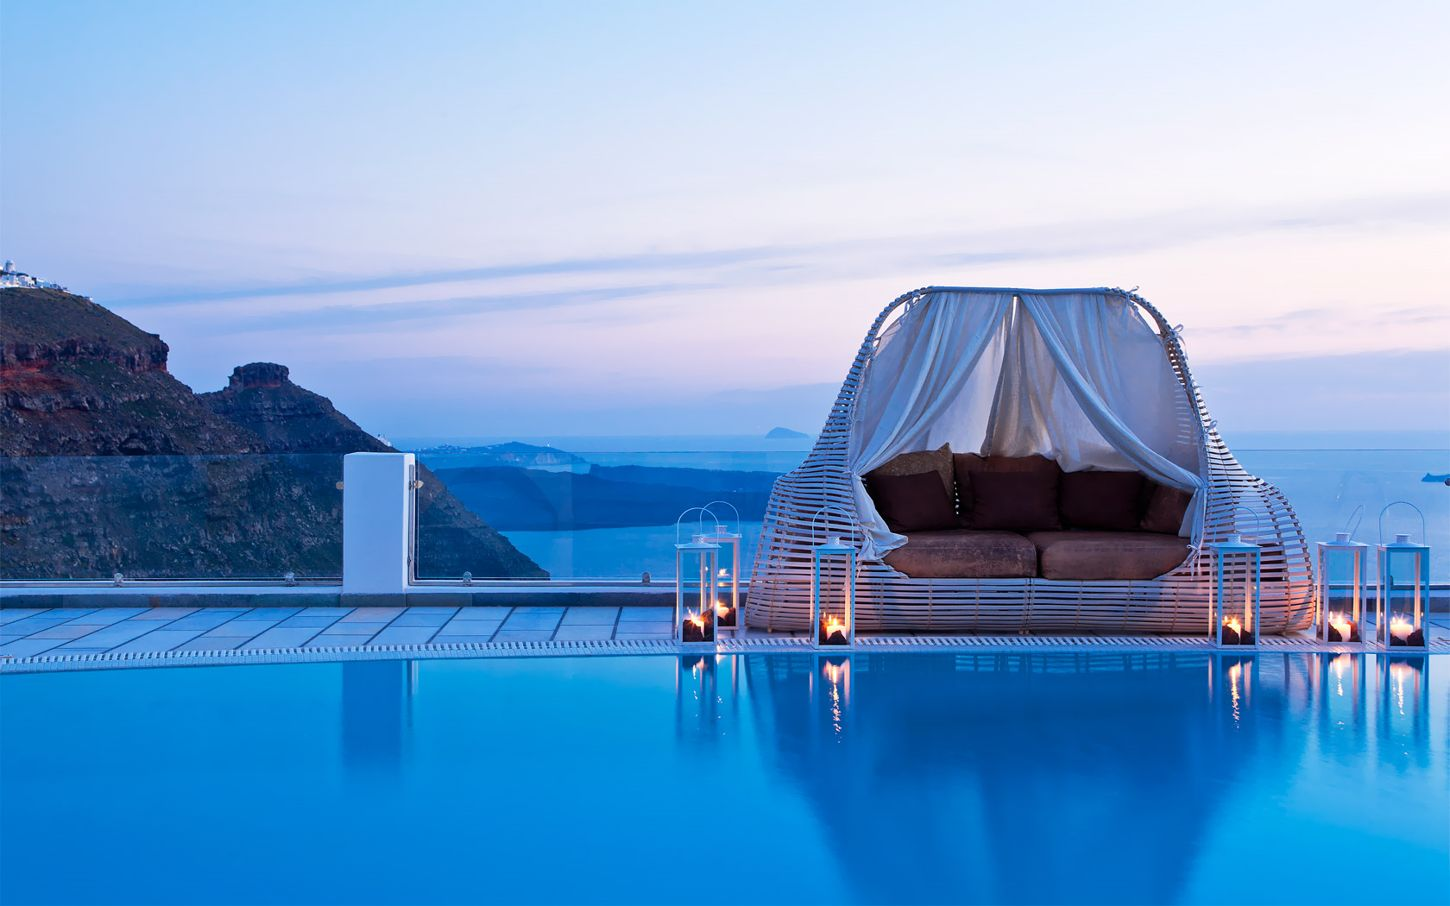 Daybed cabana by the pool